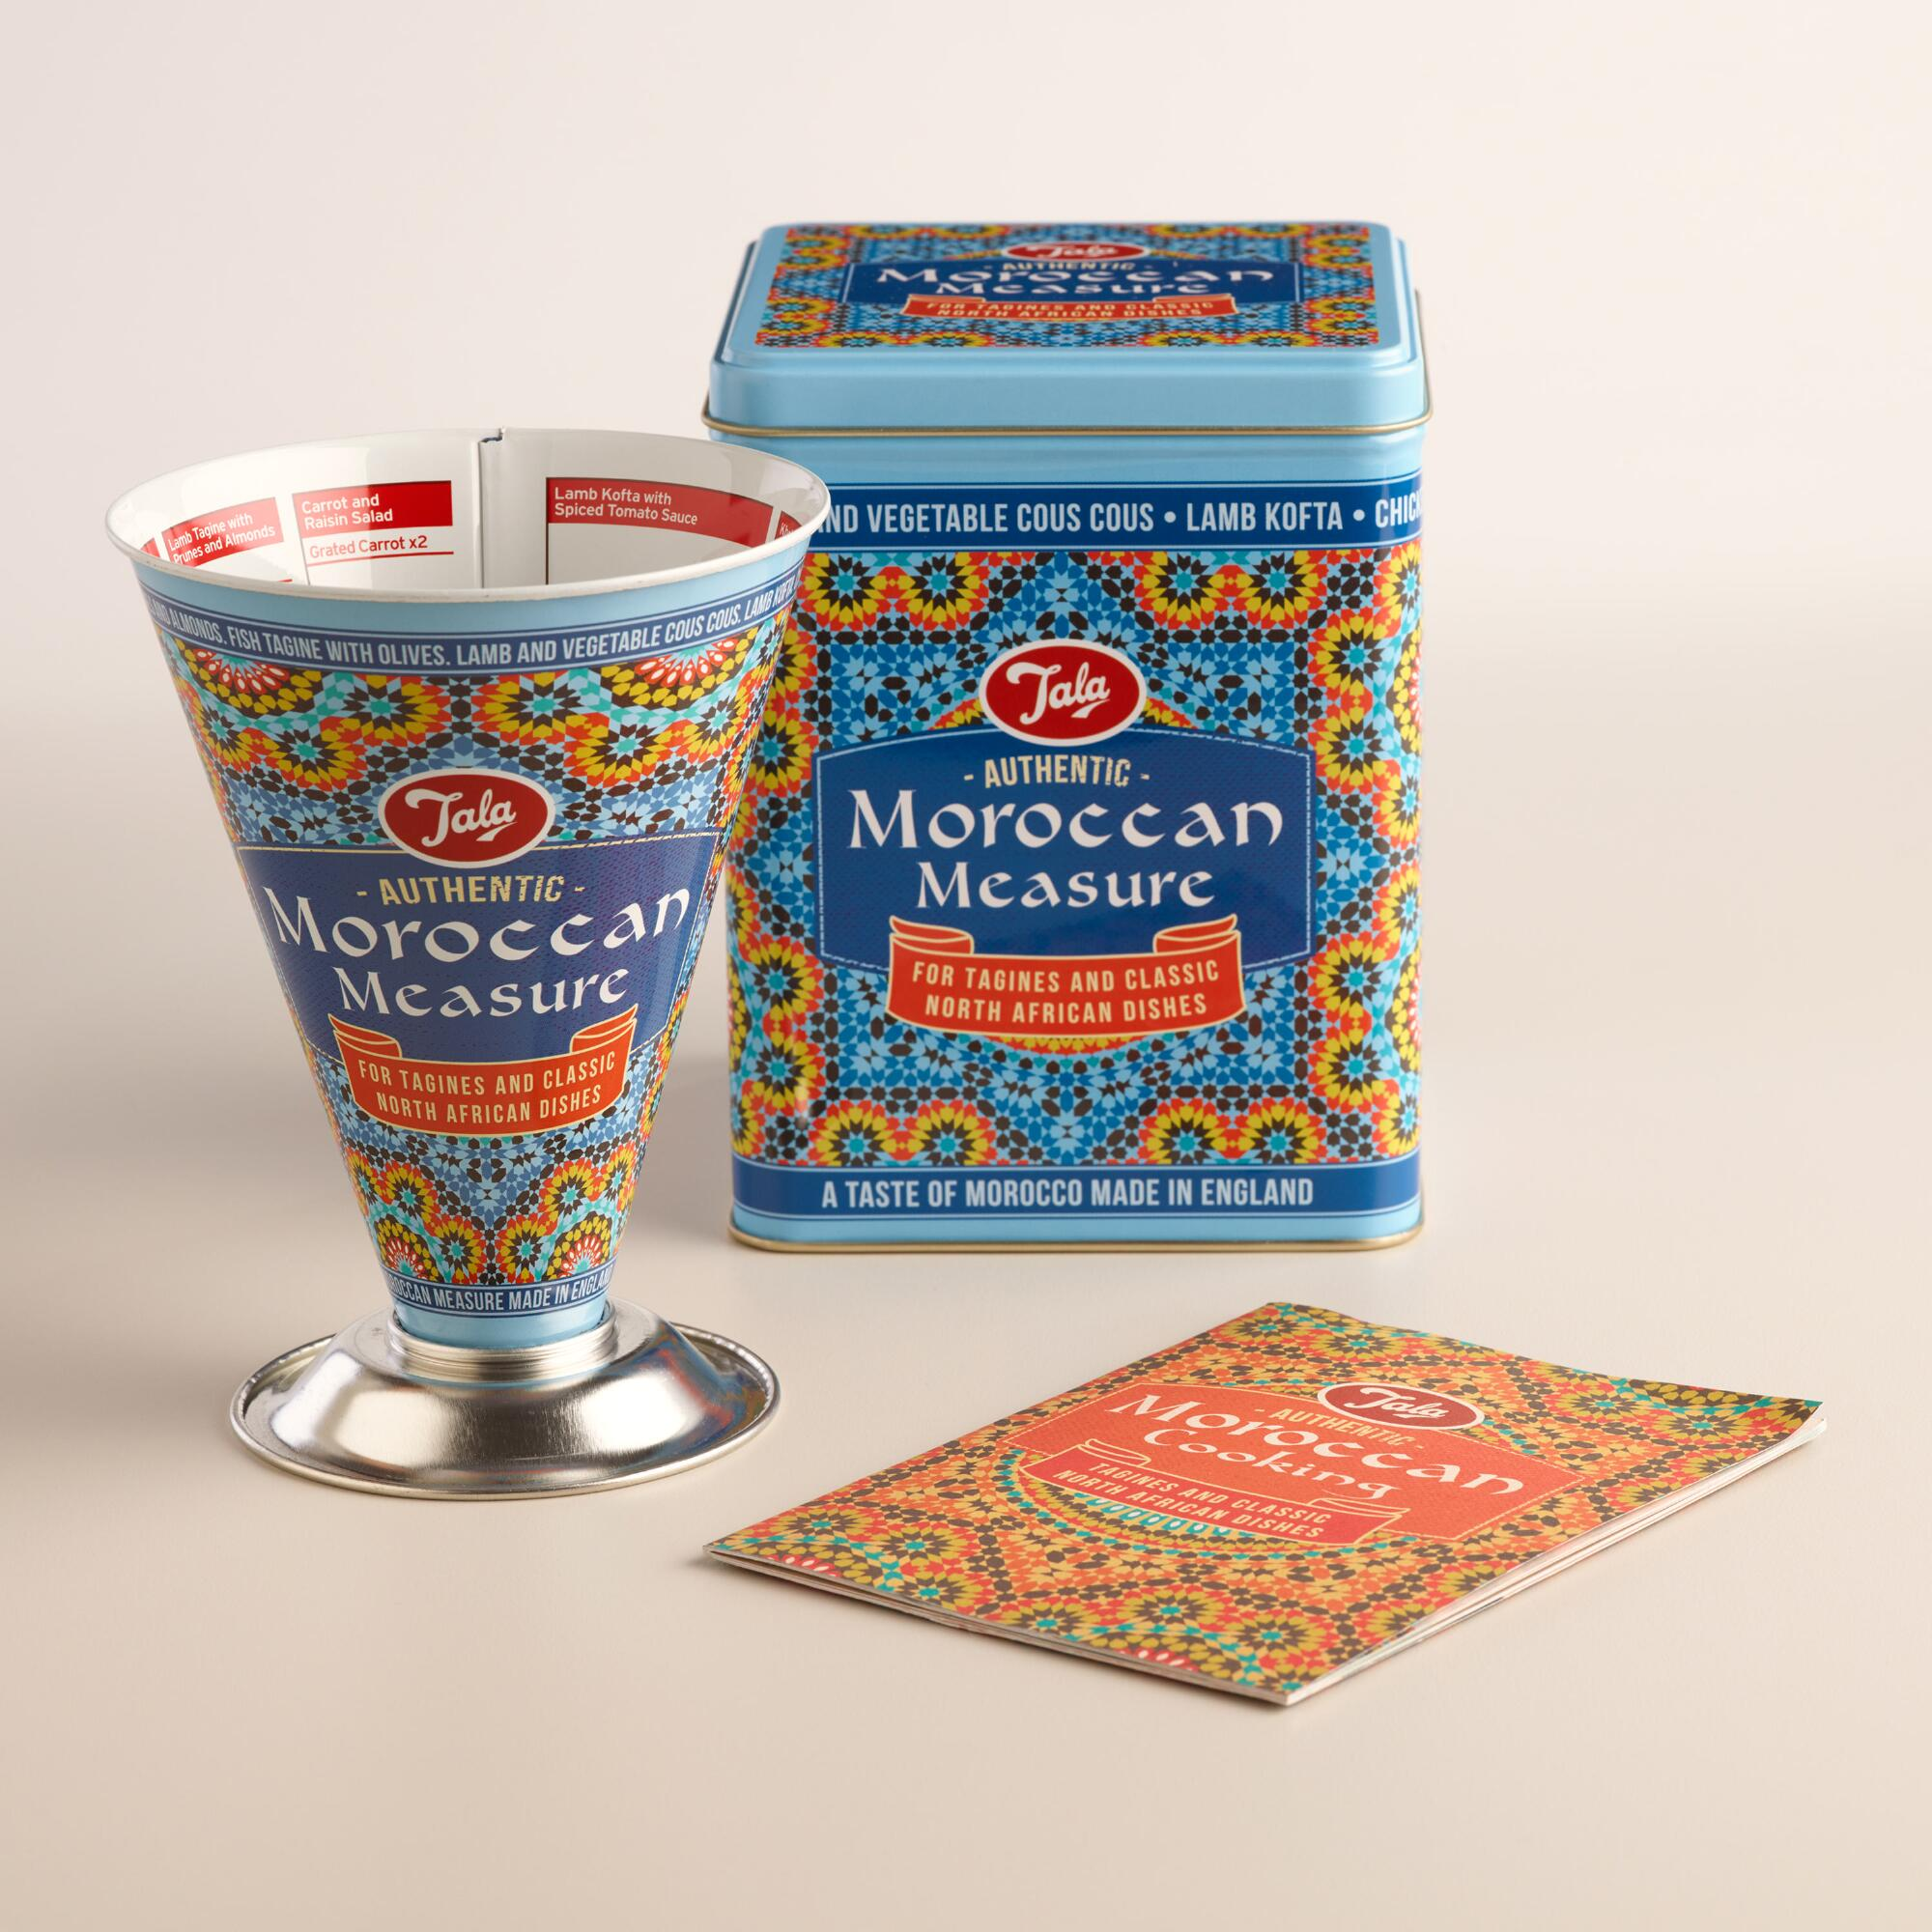 Authentic moroccan cuisine measuring cup world market for Authentic moroccan cuisine